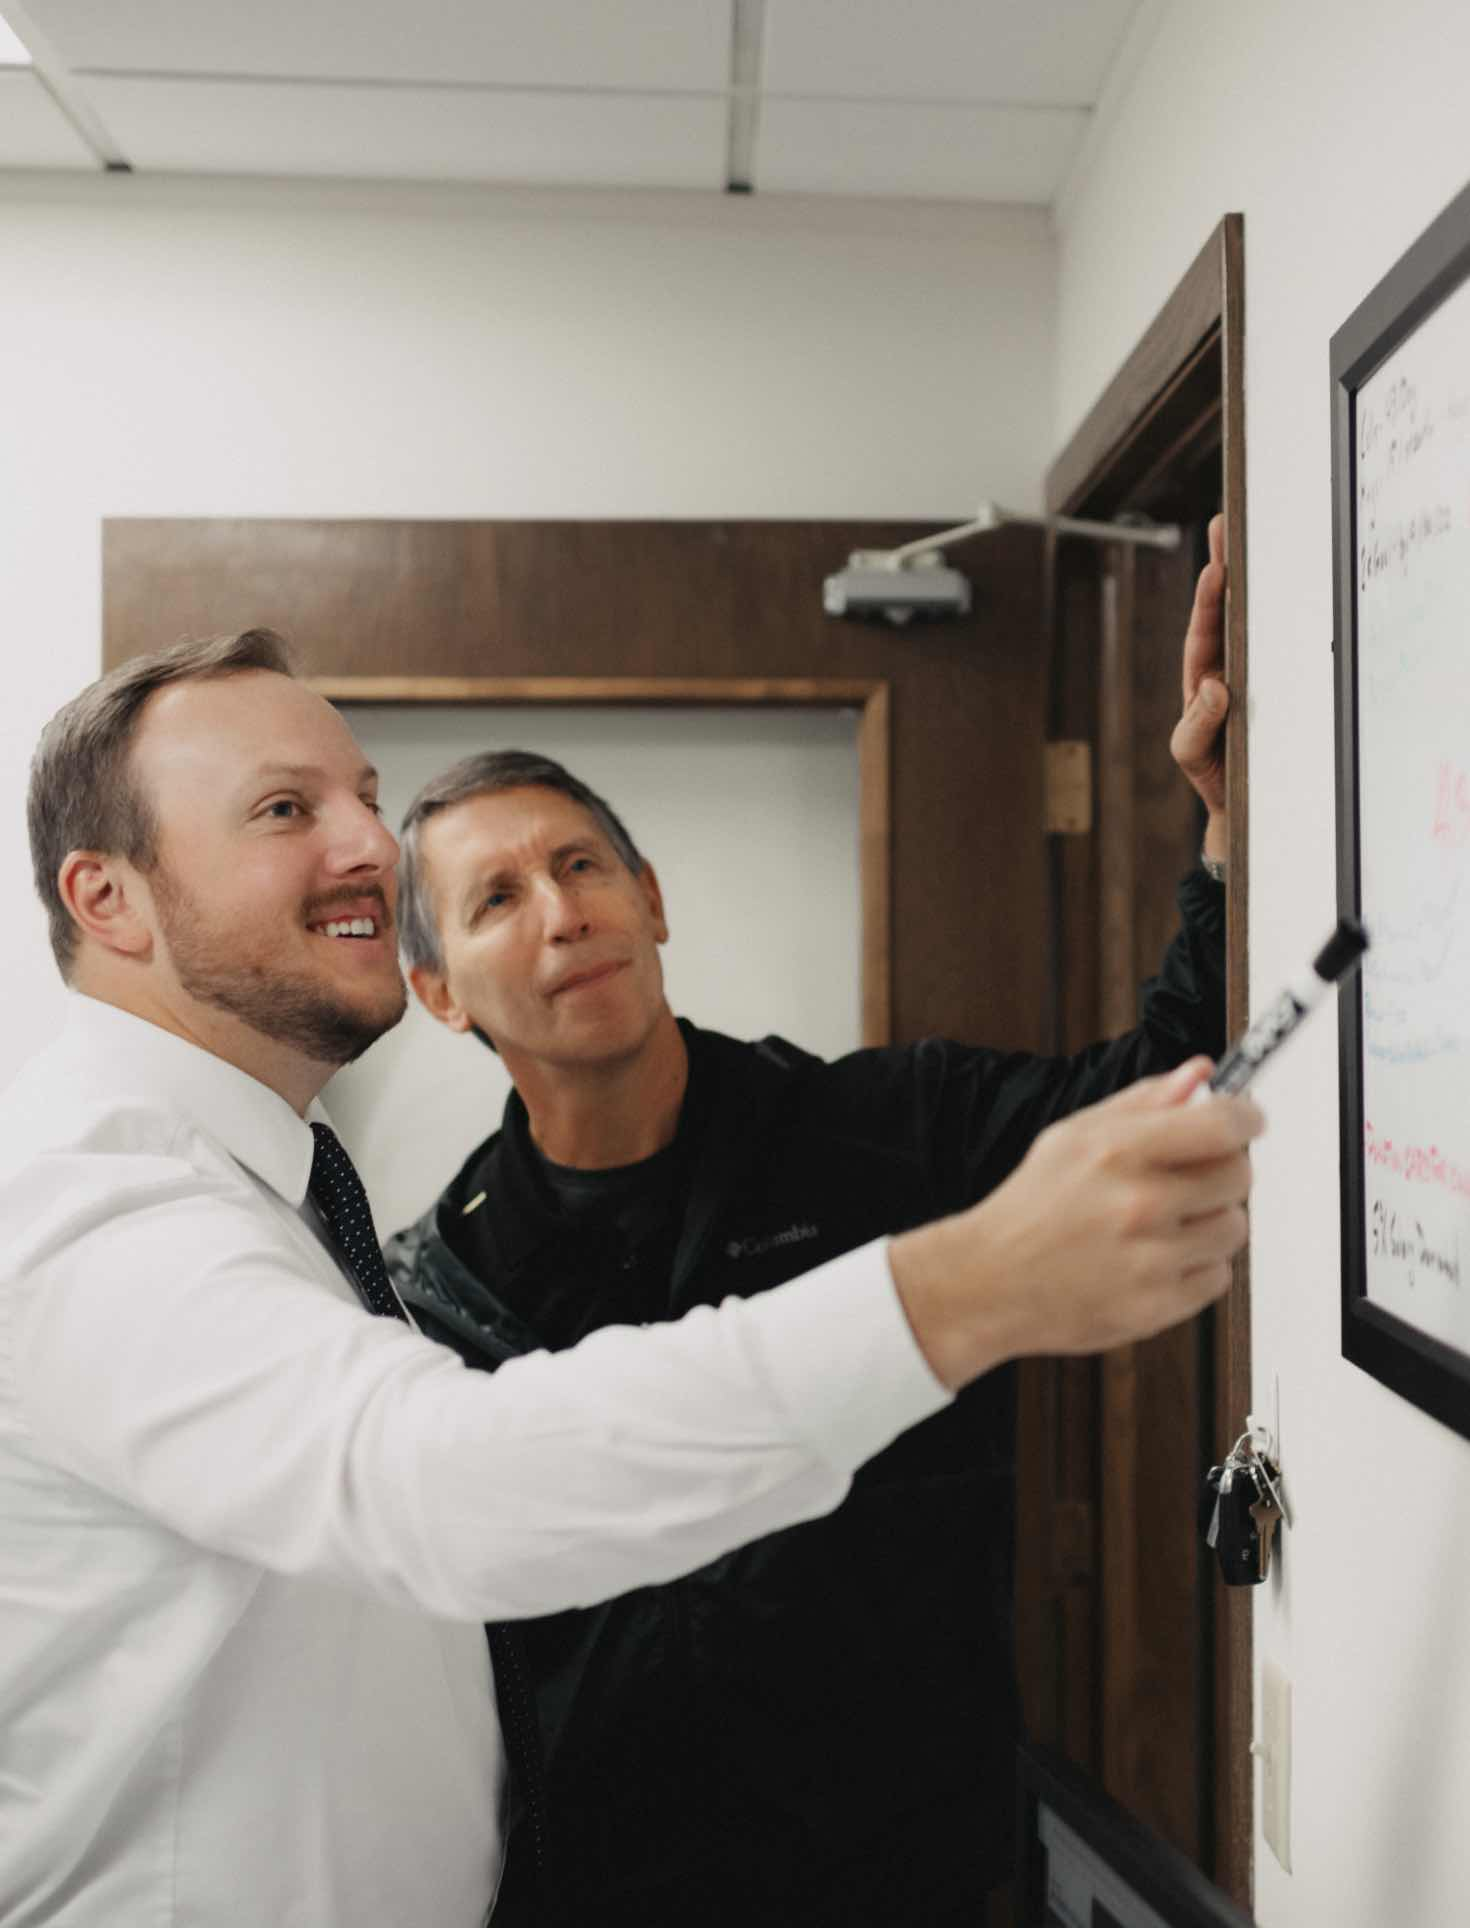 Photo of two team members looking at a whiteboard